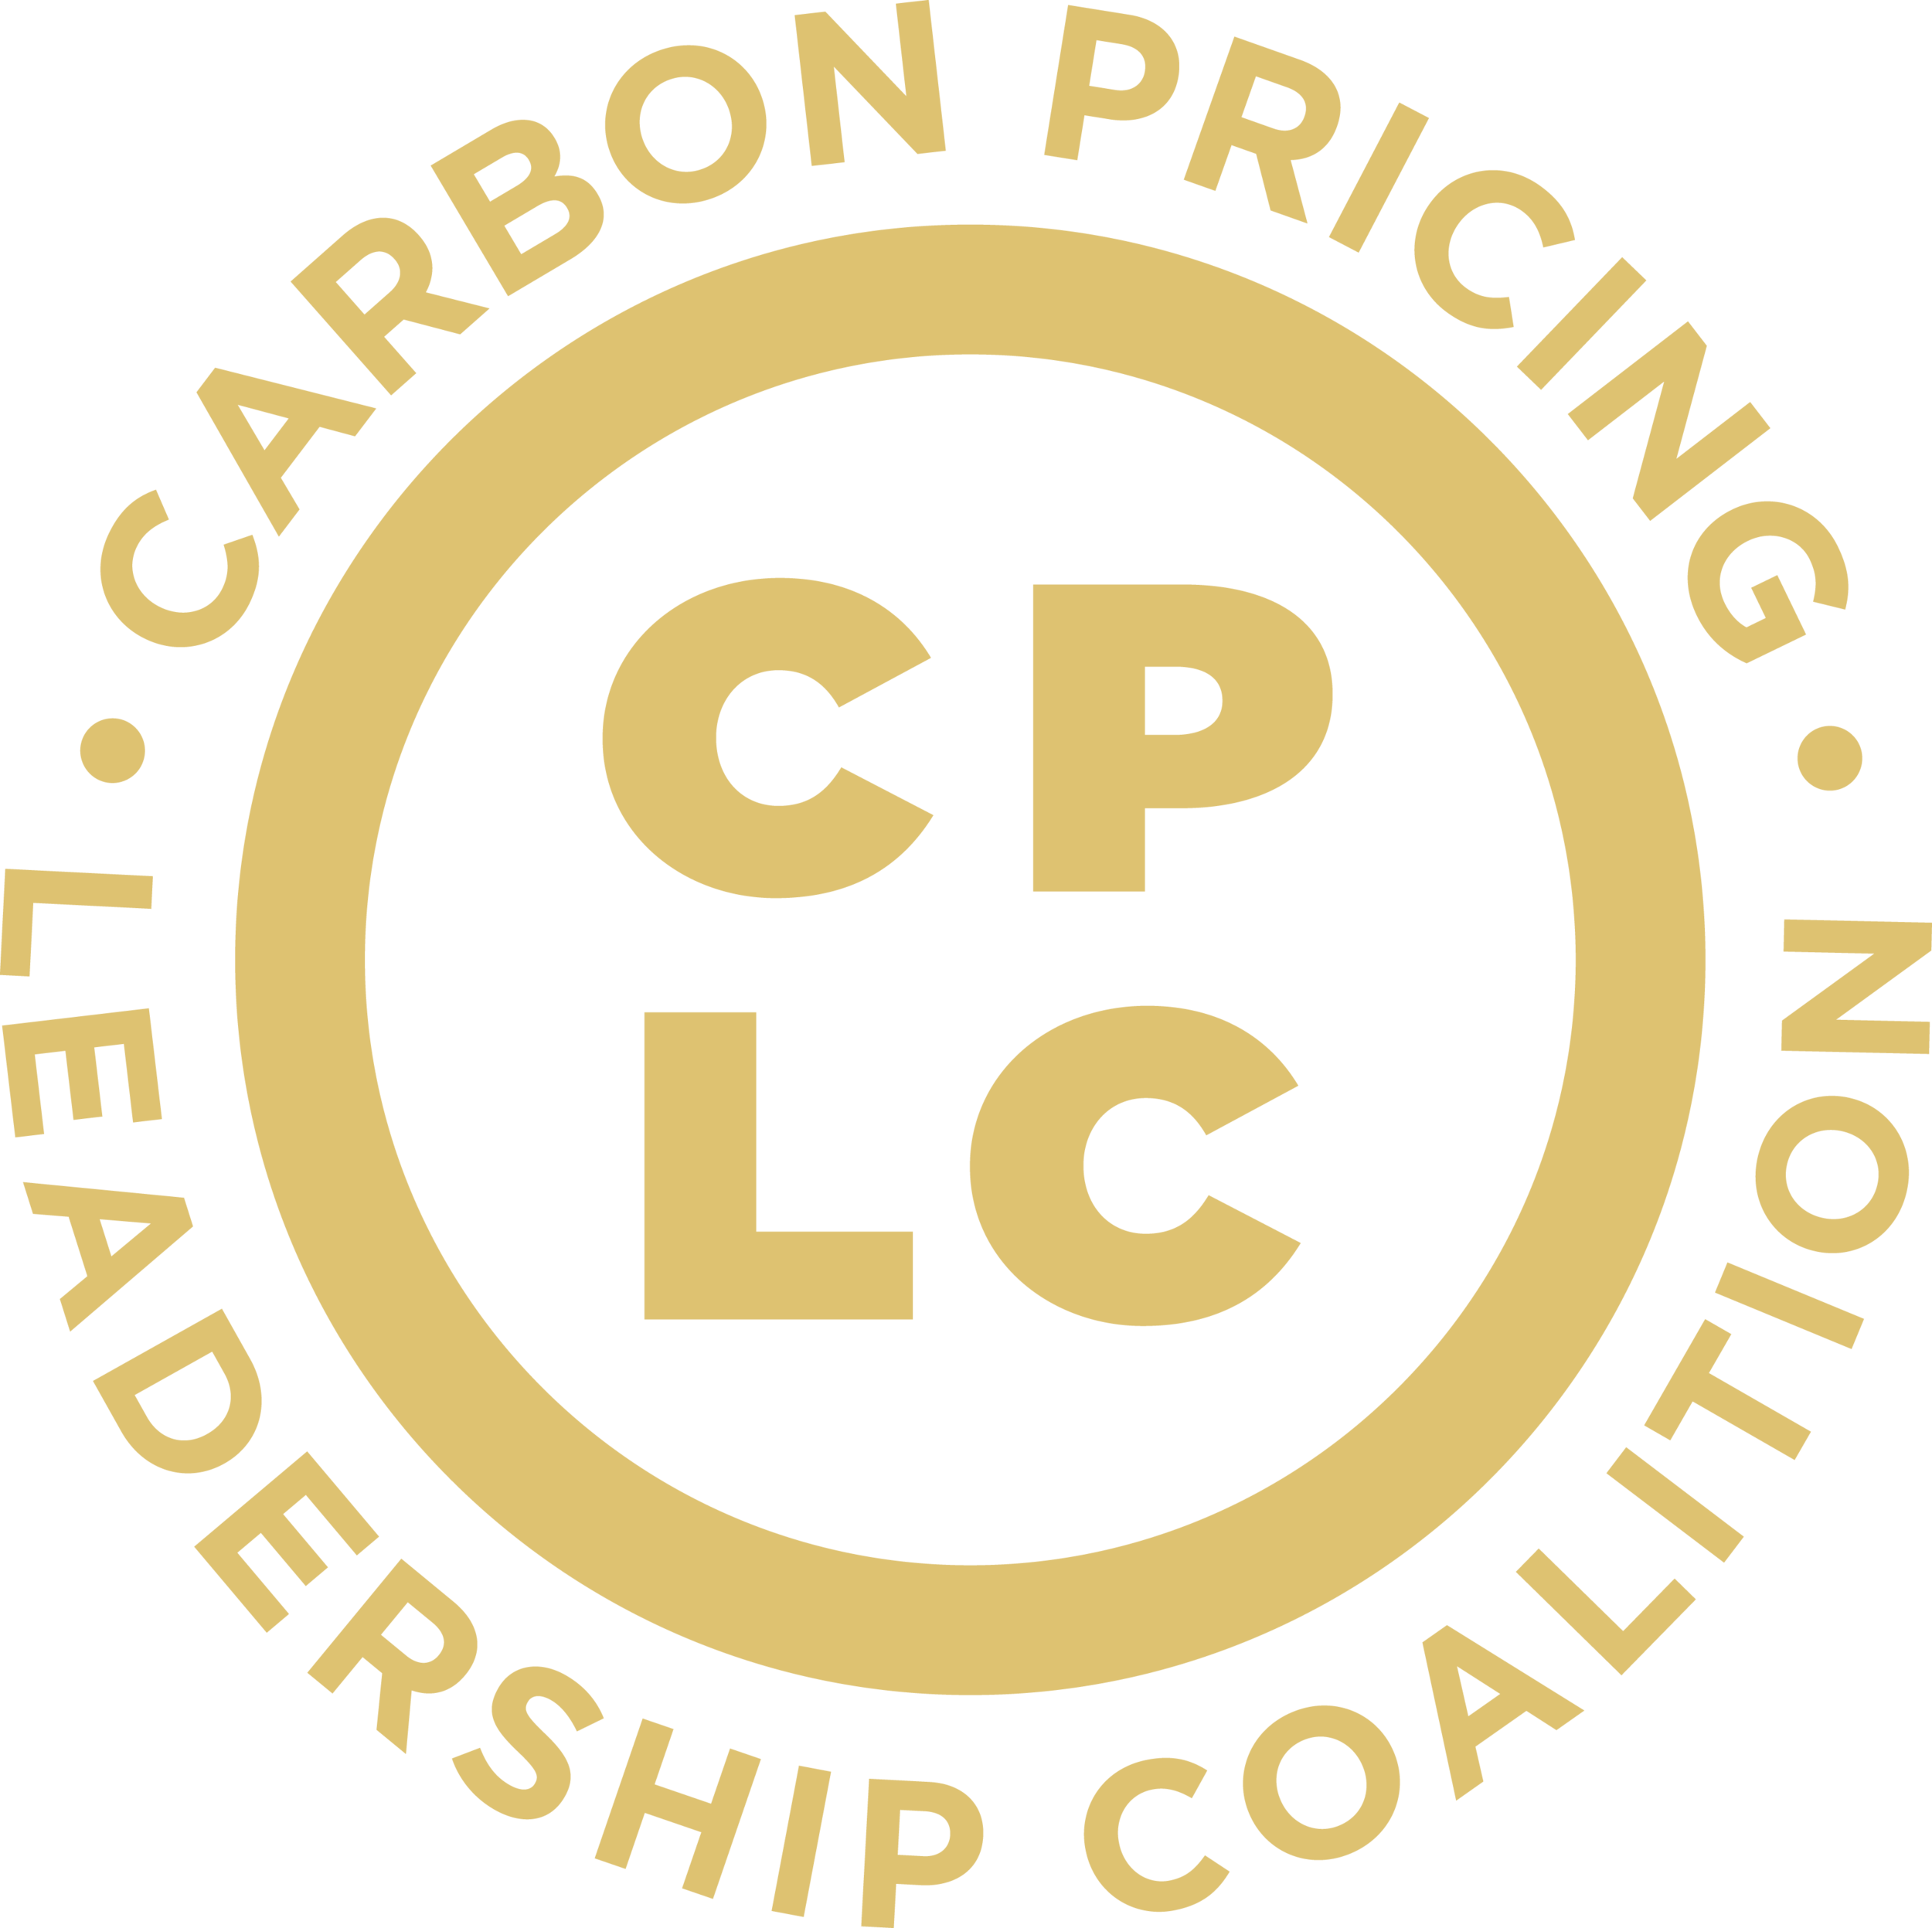 Yale Becomes First University To Join Carbon Pricing Leadership Coalition Carbon Pricing Leadership Coalition